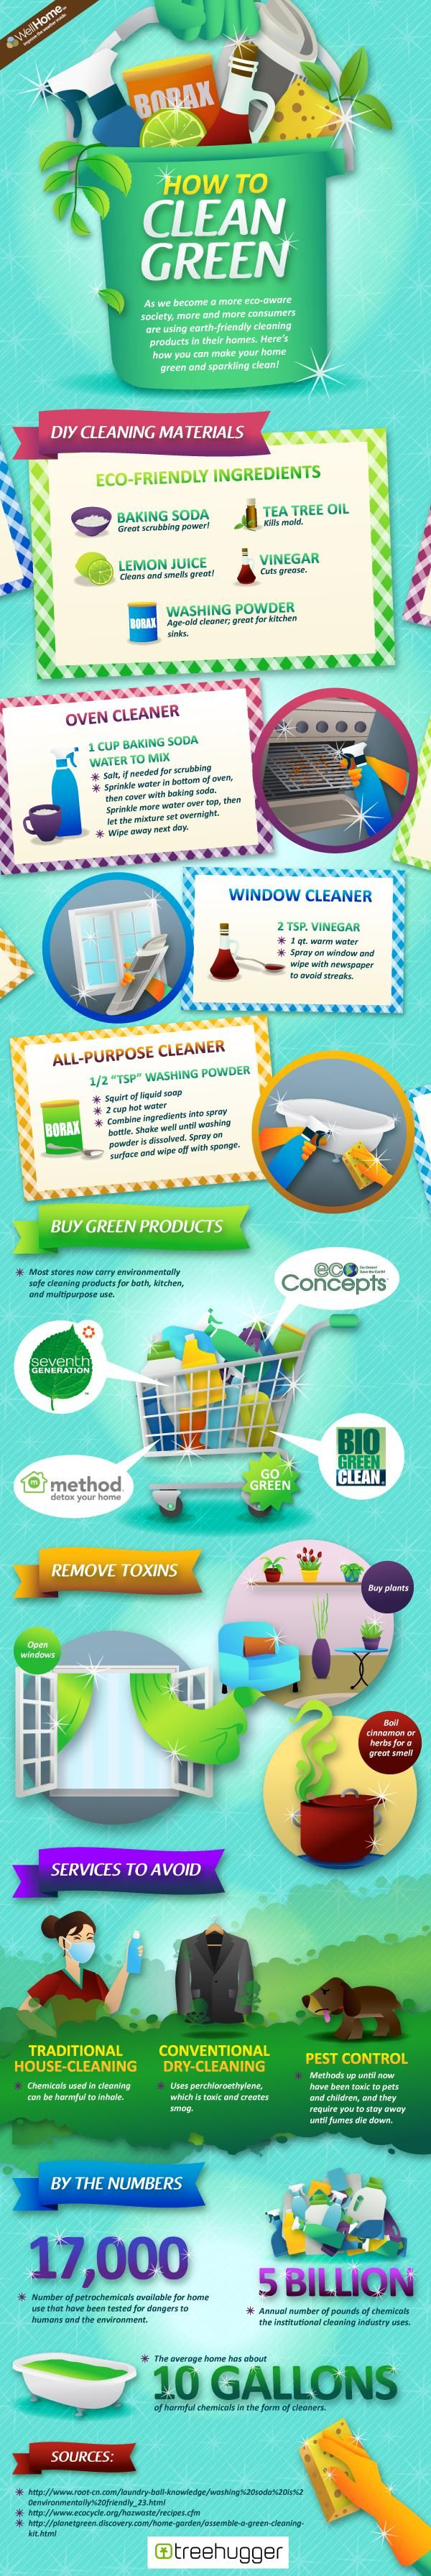 Greening Your Home: How to Make Your Own Household Cleaners #infographic #goGreen